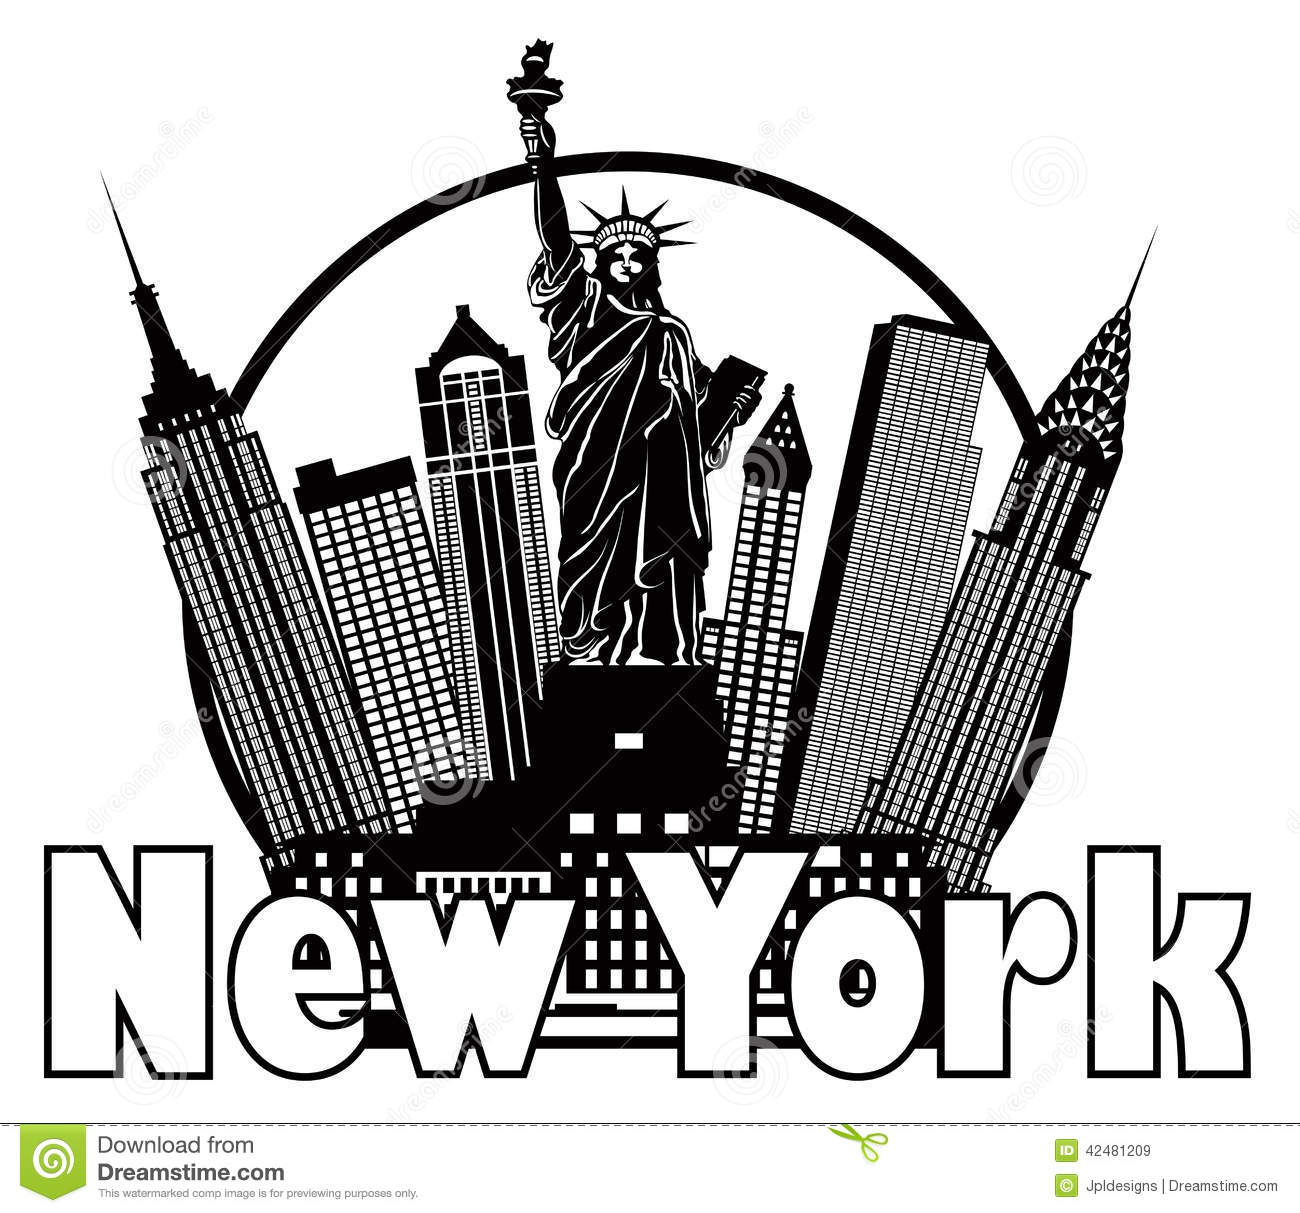 New York clipart #10, Download drawings